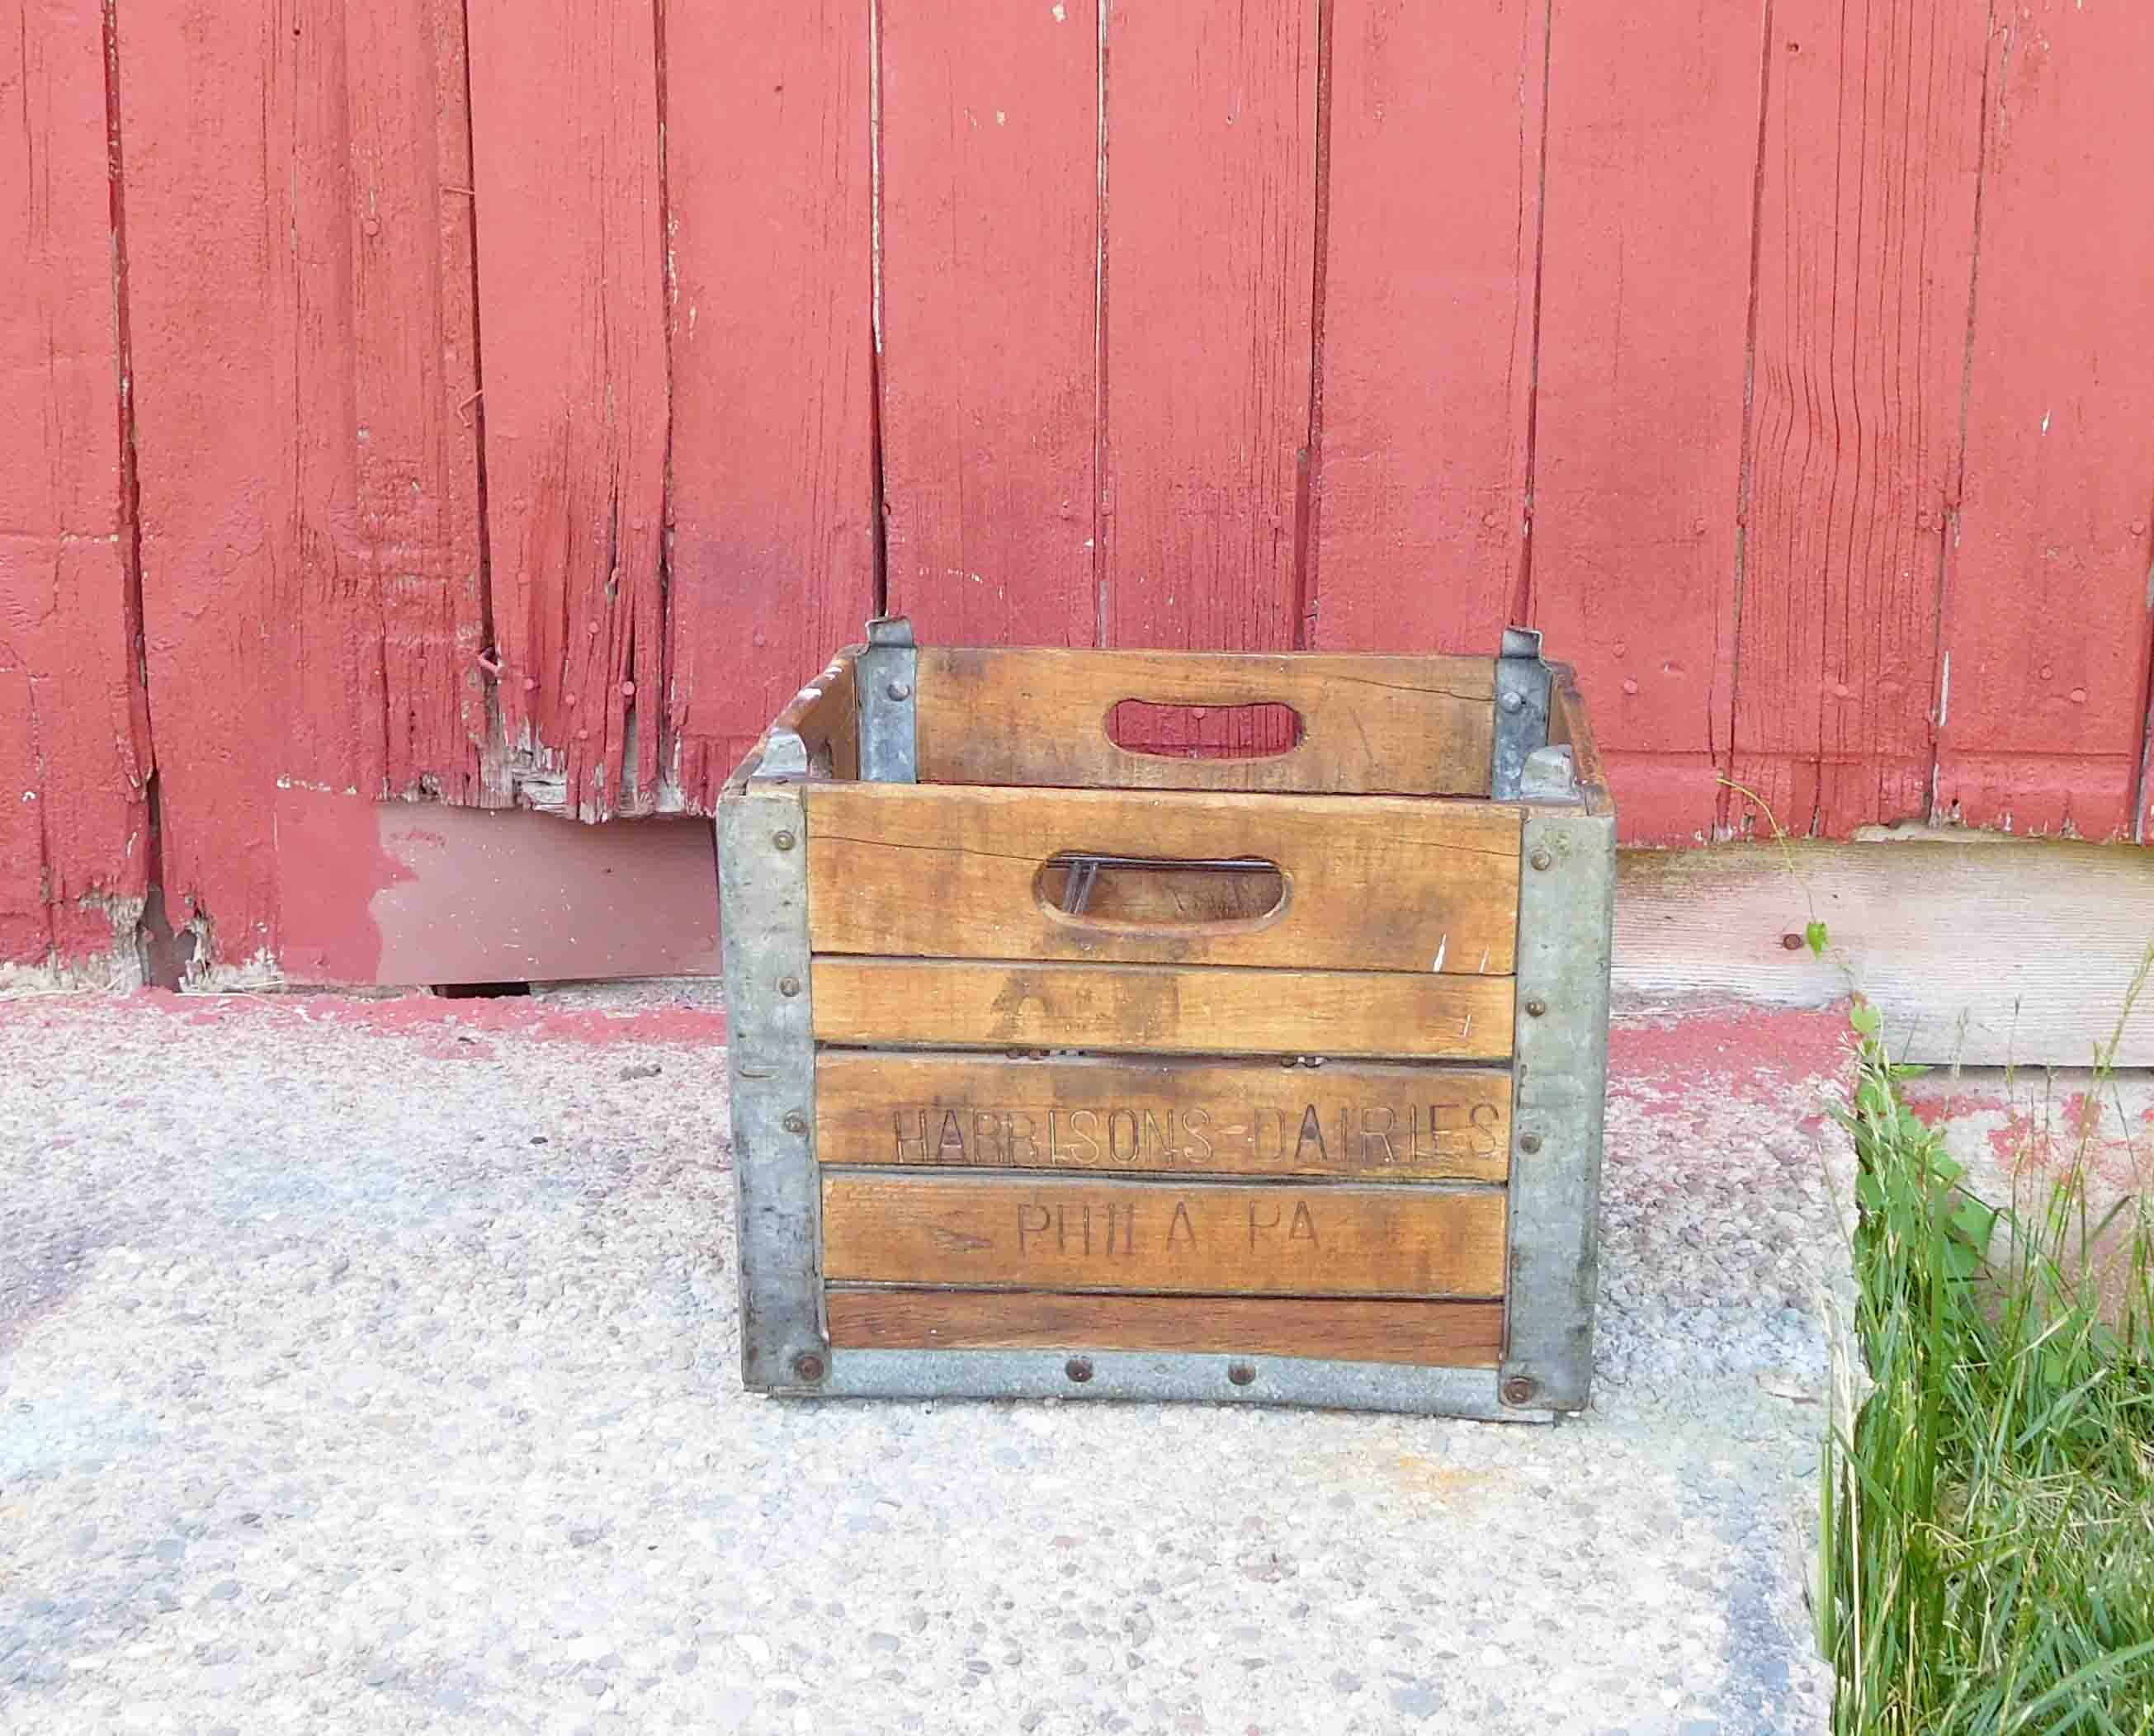 vintage wooden milk crate harbisons dairies philapa with. Black Bedroom Furniture Sets. Home Design Ideas